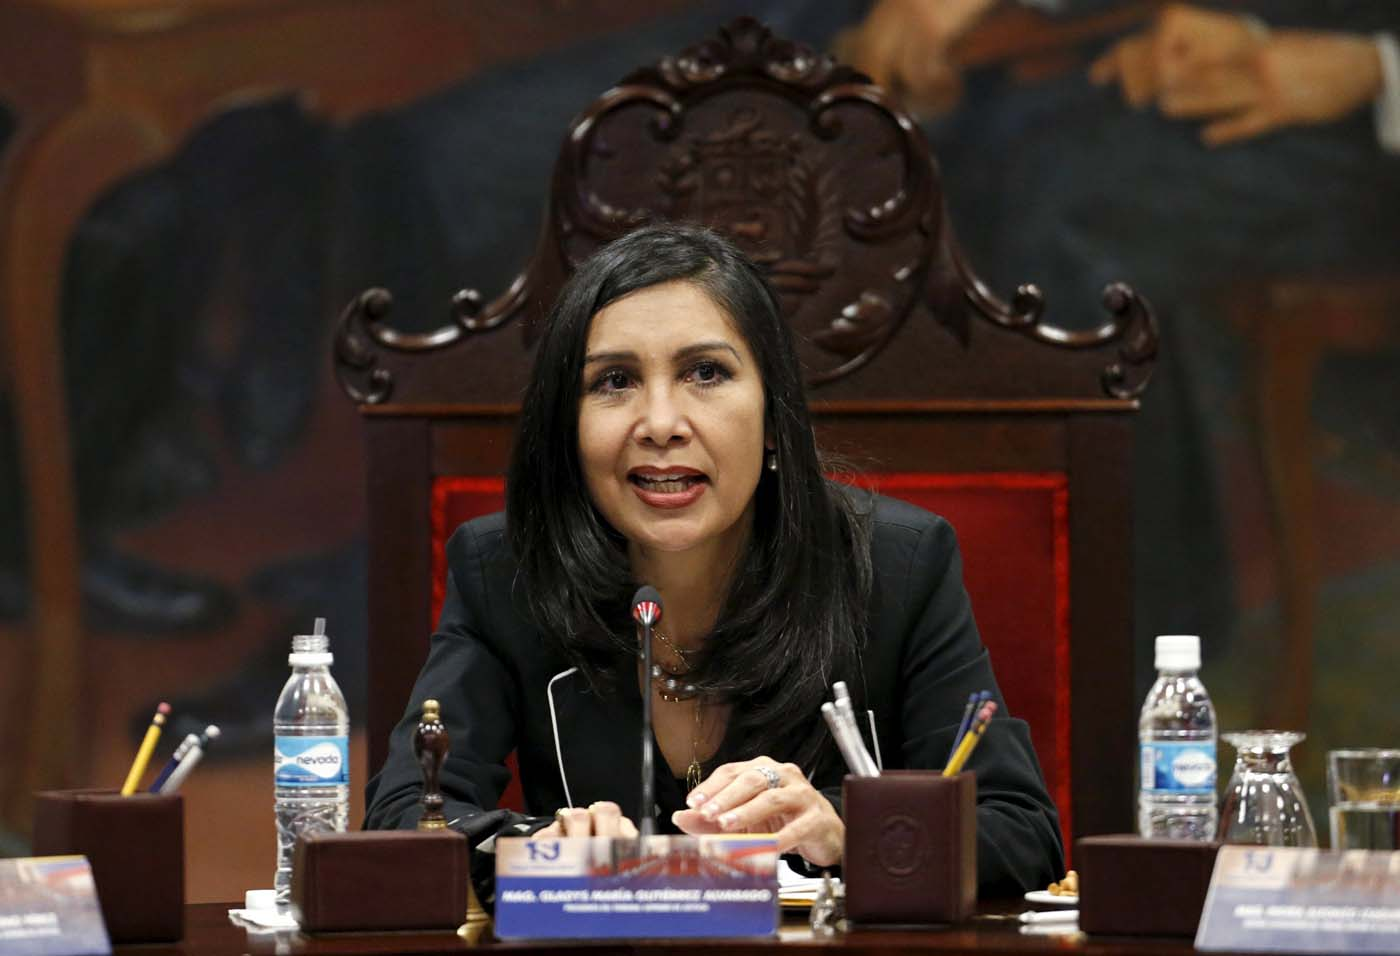 Venezuela's Supreme Court President Gladys Gutierrez speaks during a meeting with members of the court and the newly named justices, at the Supreme Court building in Caracas, December 23, 2015. Venezuela's Congress on Wednesday named 13 justices to the Supreme Court in a manoeuvre critics slammed as a last-minute court-packing scheme by the Socialist Party in the final days before it loses control of the legislature in January. Since this month's drubbing in polls that gave the opposition a two-thirds majority, the ruling socialists have accelerated the approval of laws, funding requests and new appointments. REUTERS/Carlos Garcia Rawlins